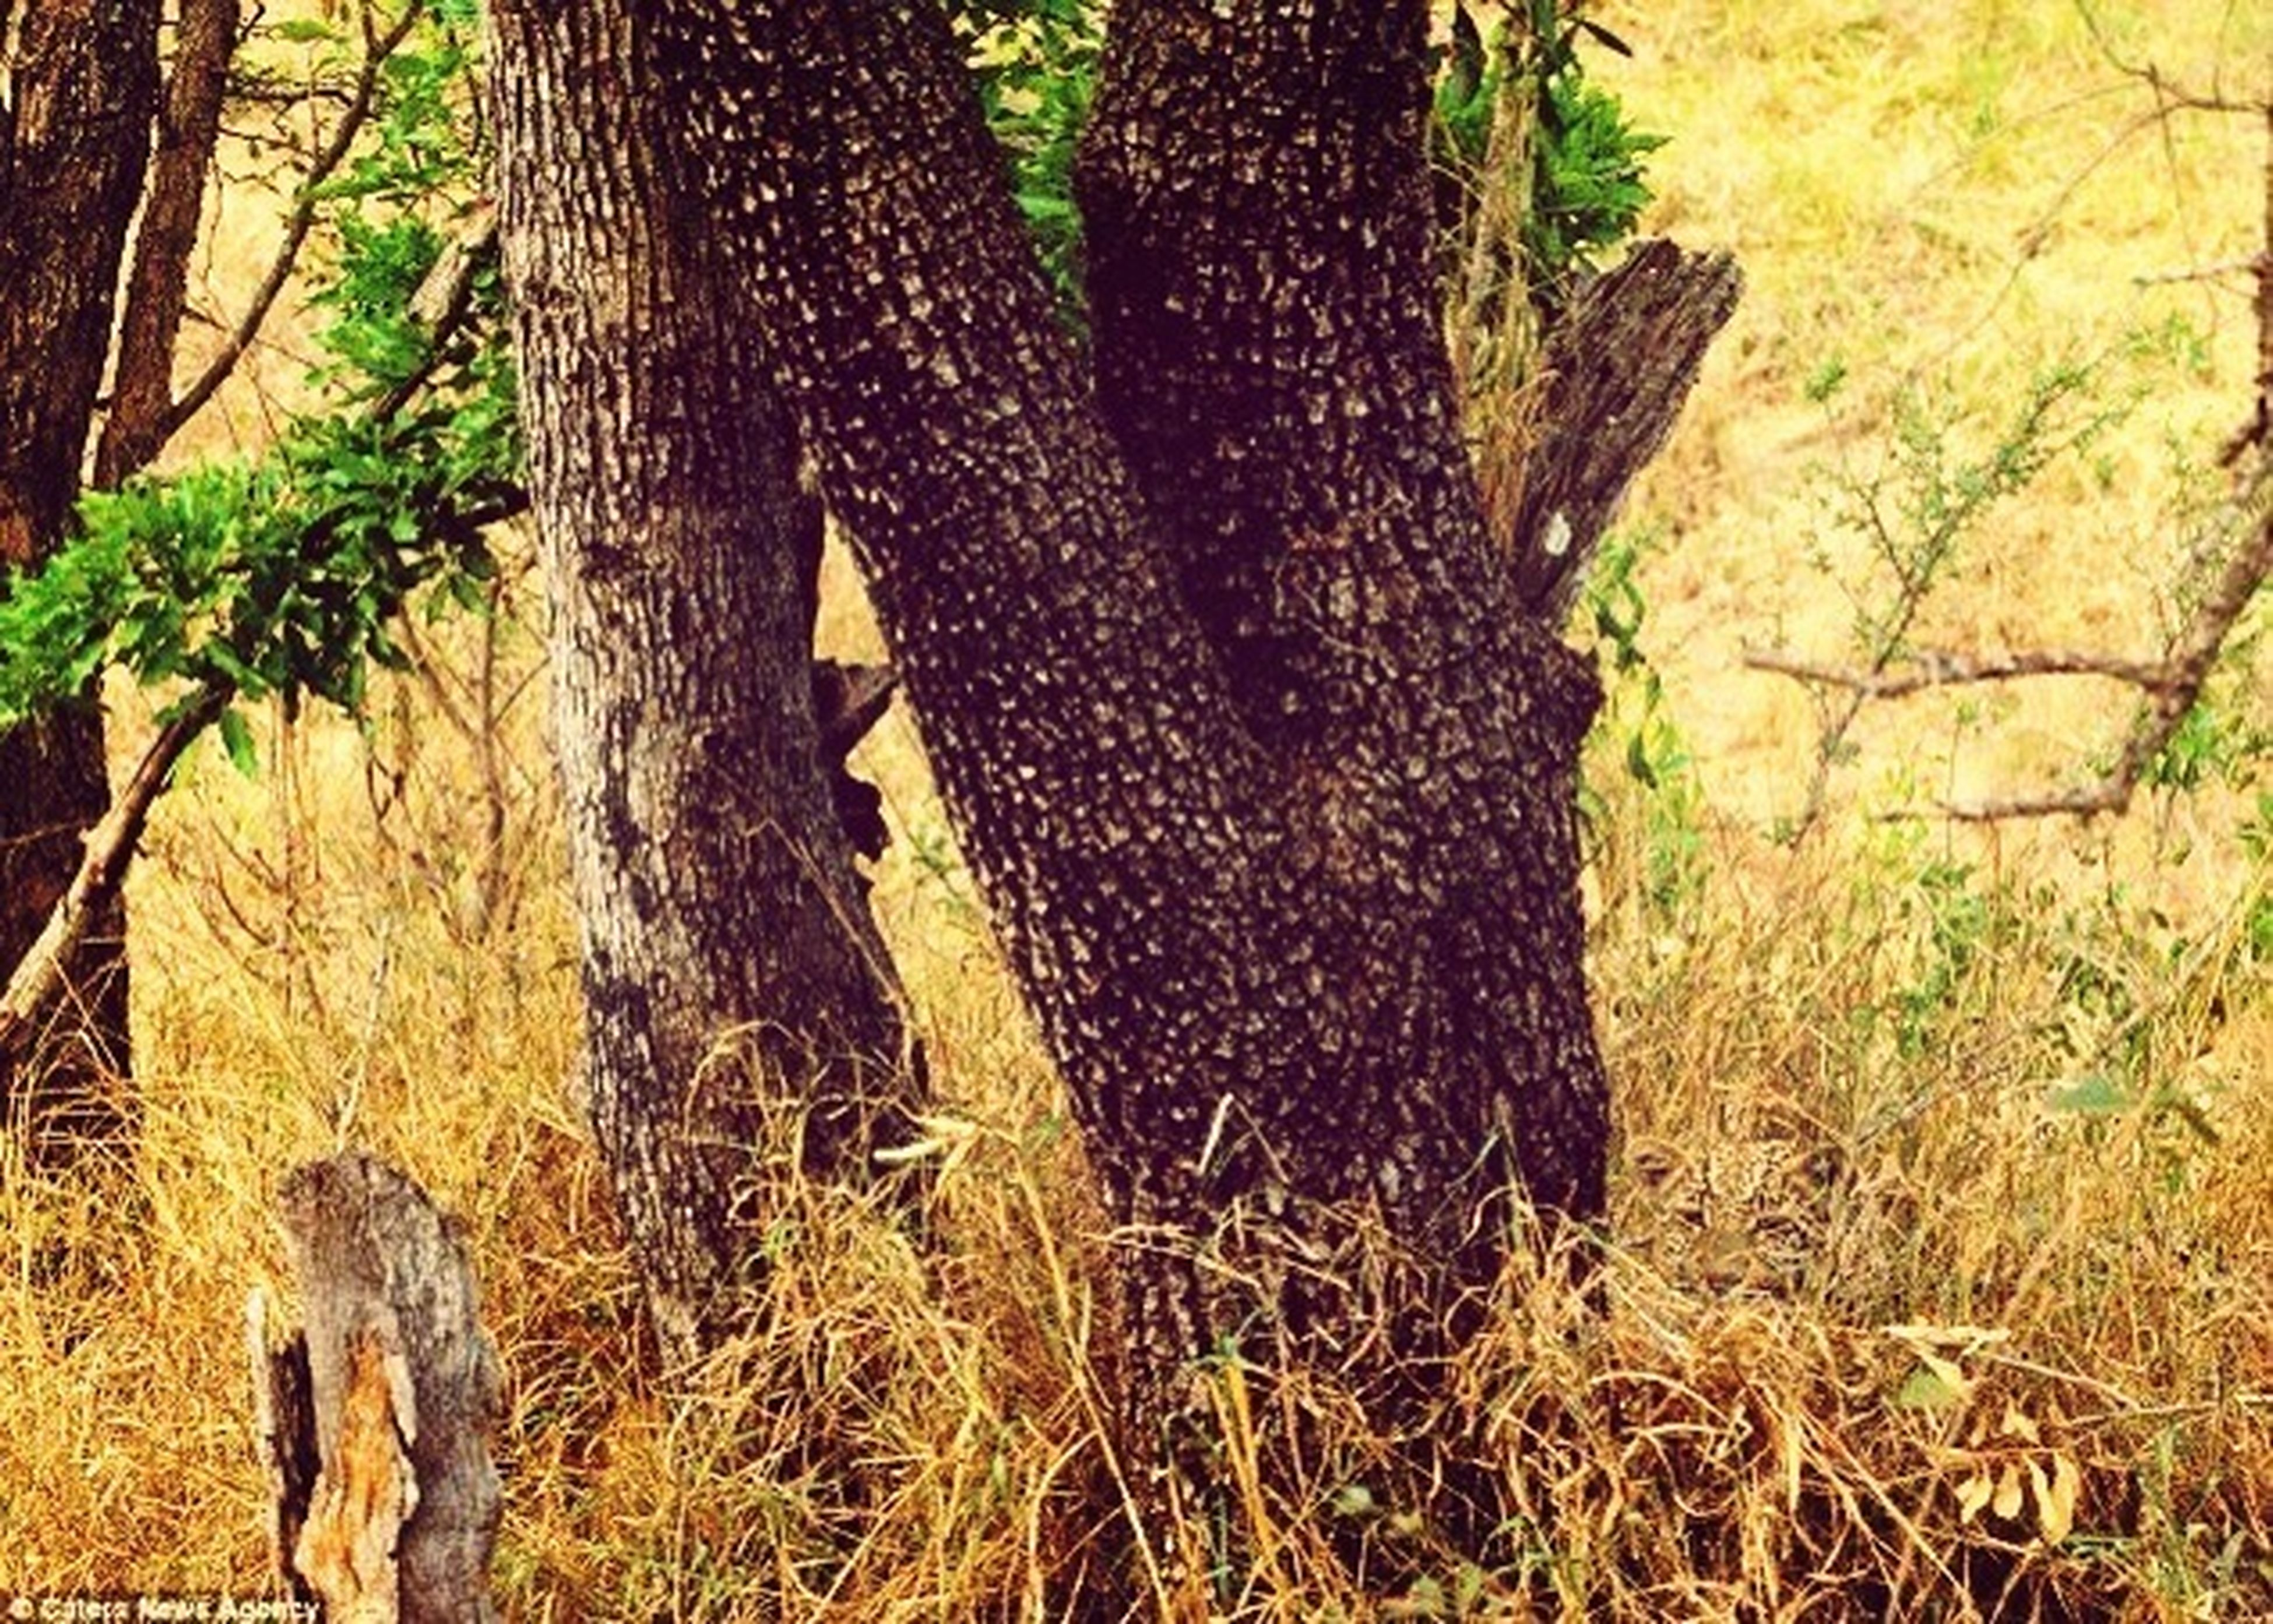 Where's The Leopard?